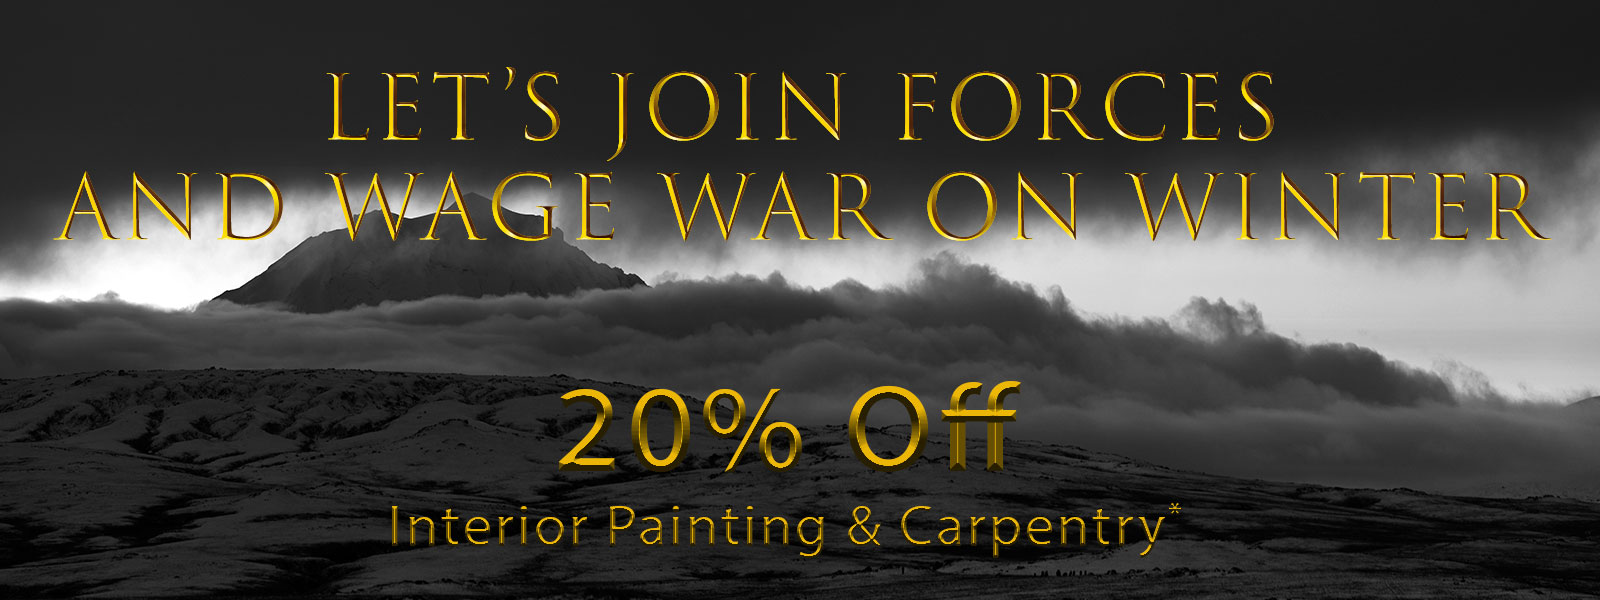 Wage War on Winter with 20% Off